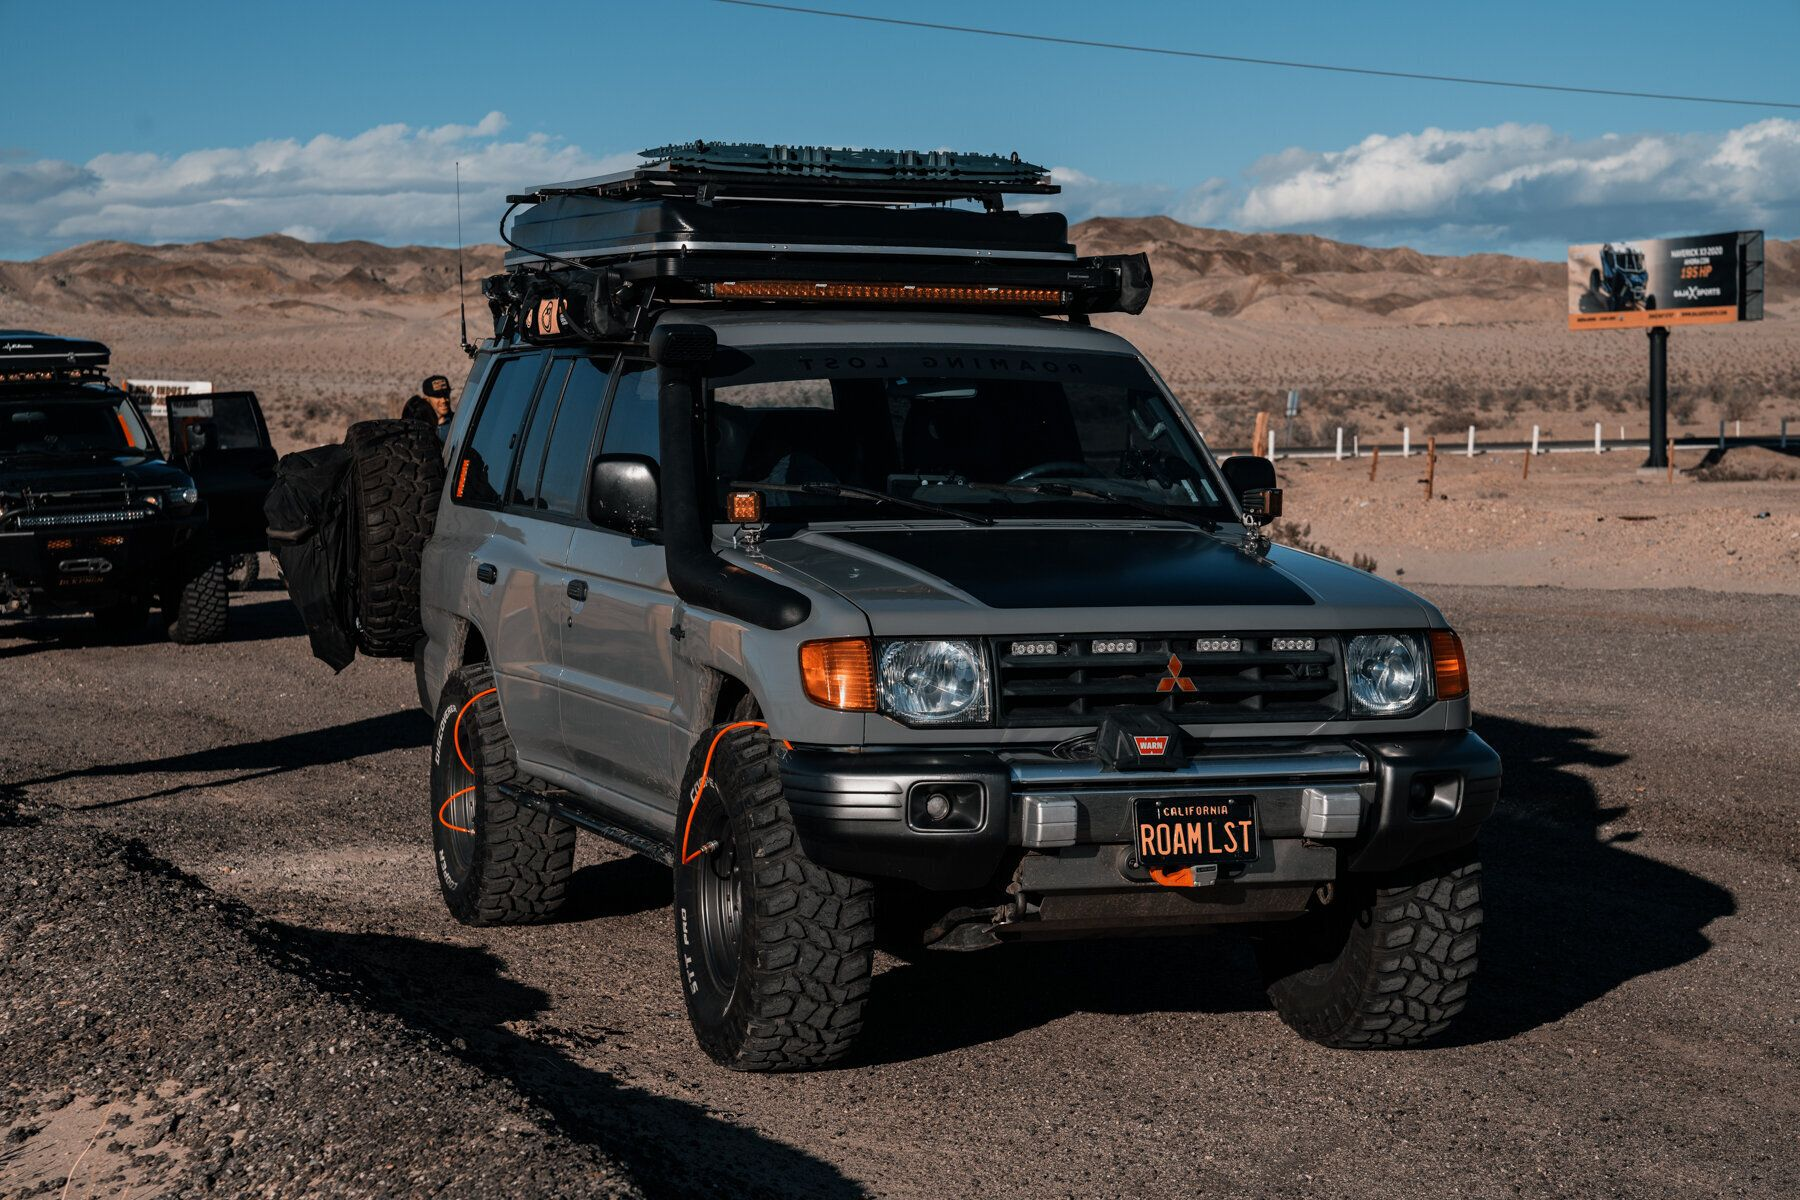 For Sale In 2020 Overlanding Mitsubishi Offroad Trucks 4x4